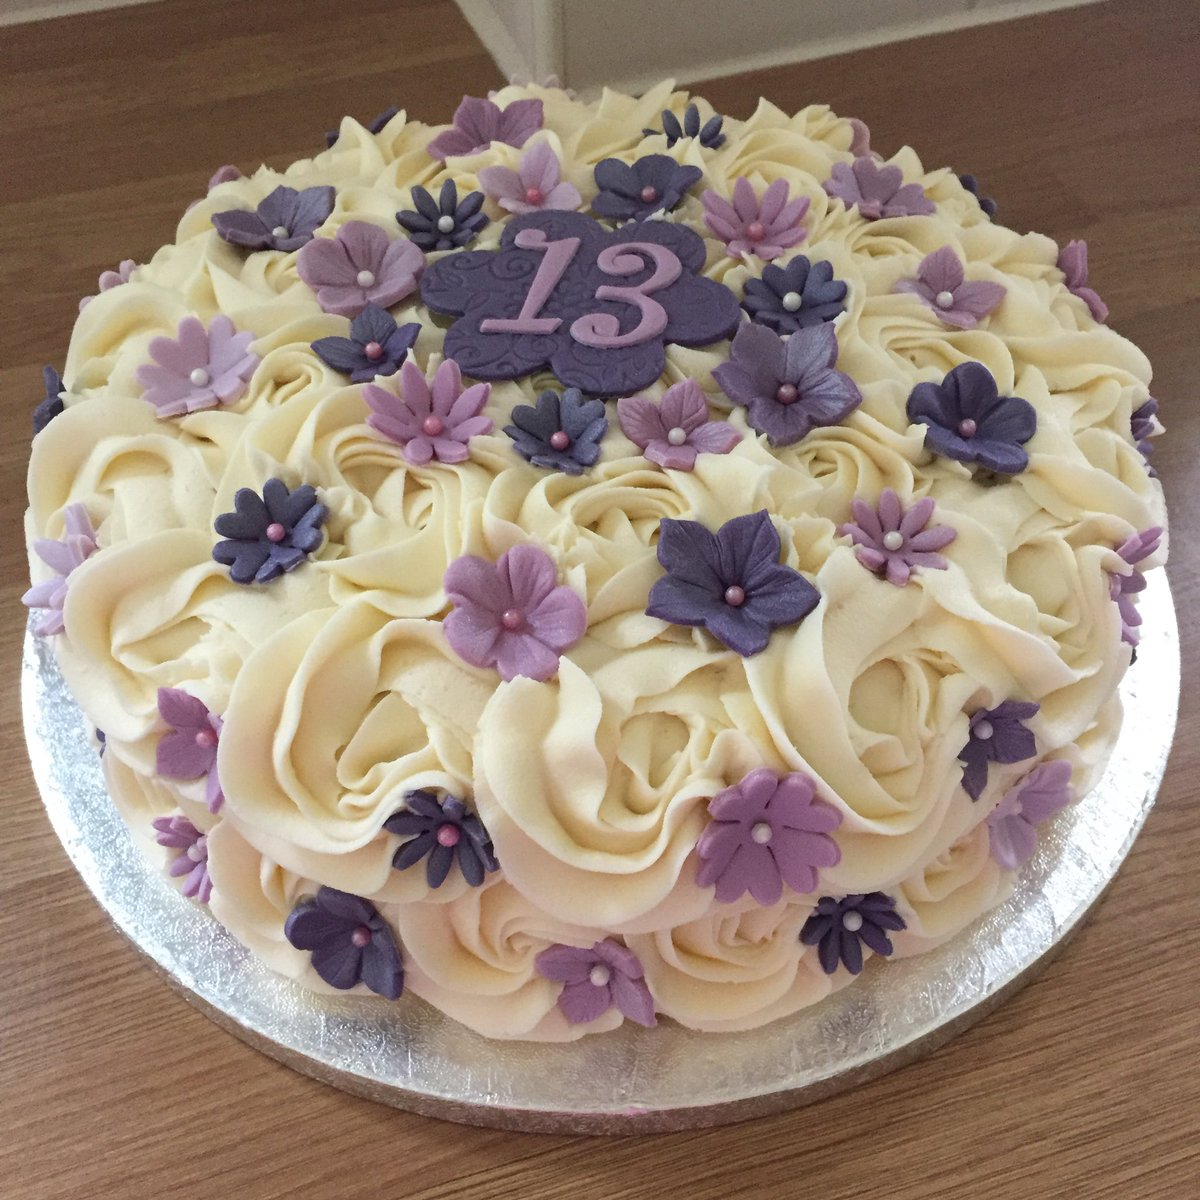 Saddleworthbakehouse On Twitter 13th Birthday Cake Vanilla